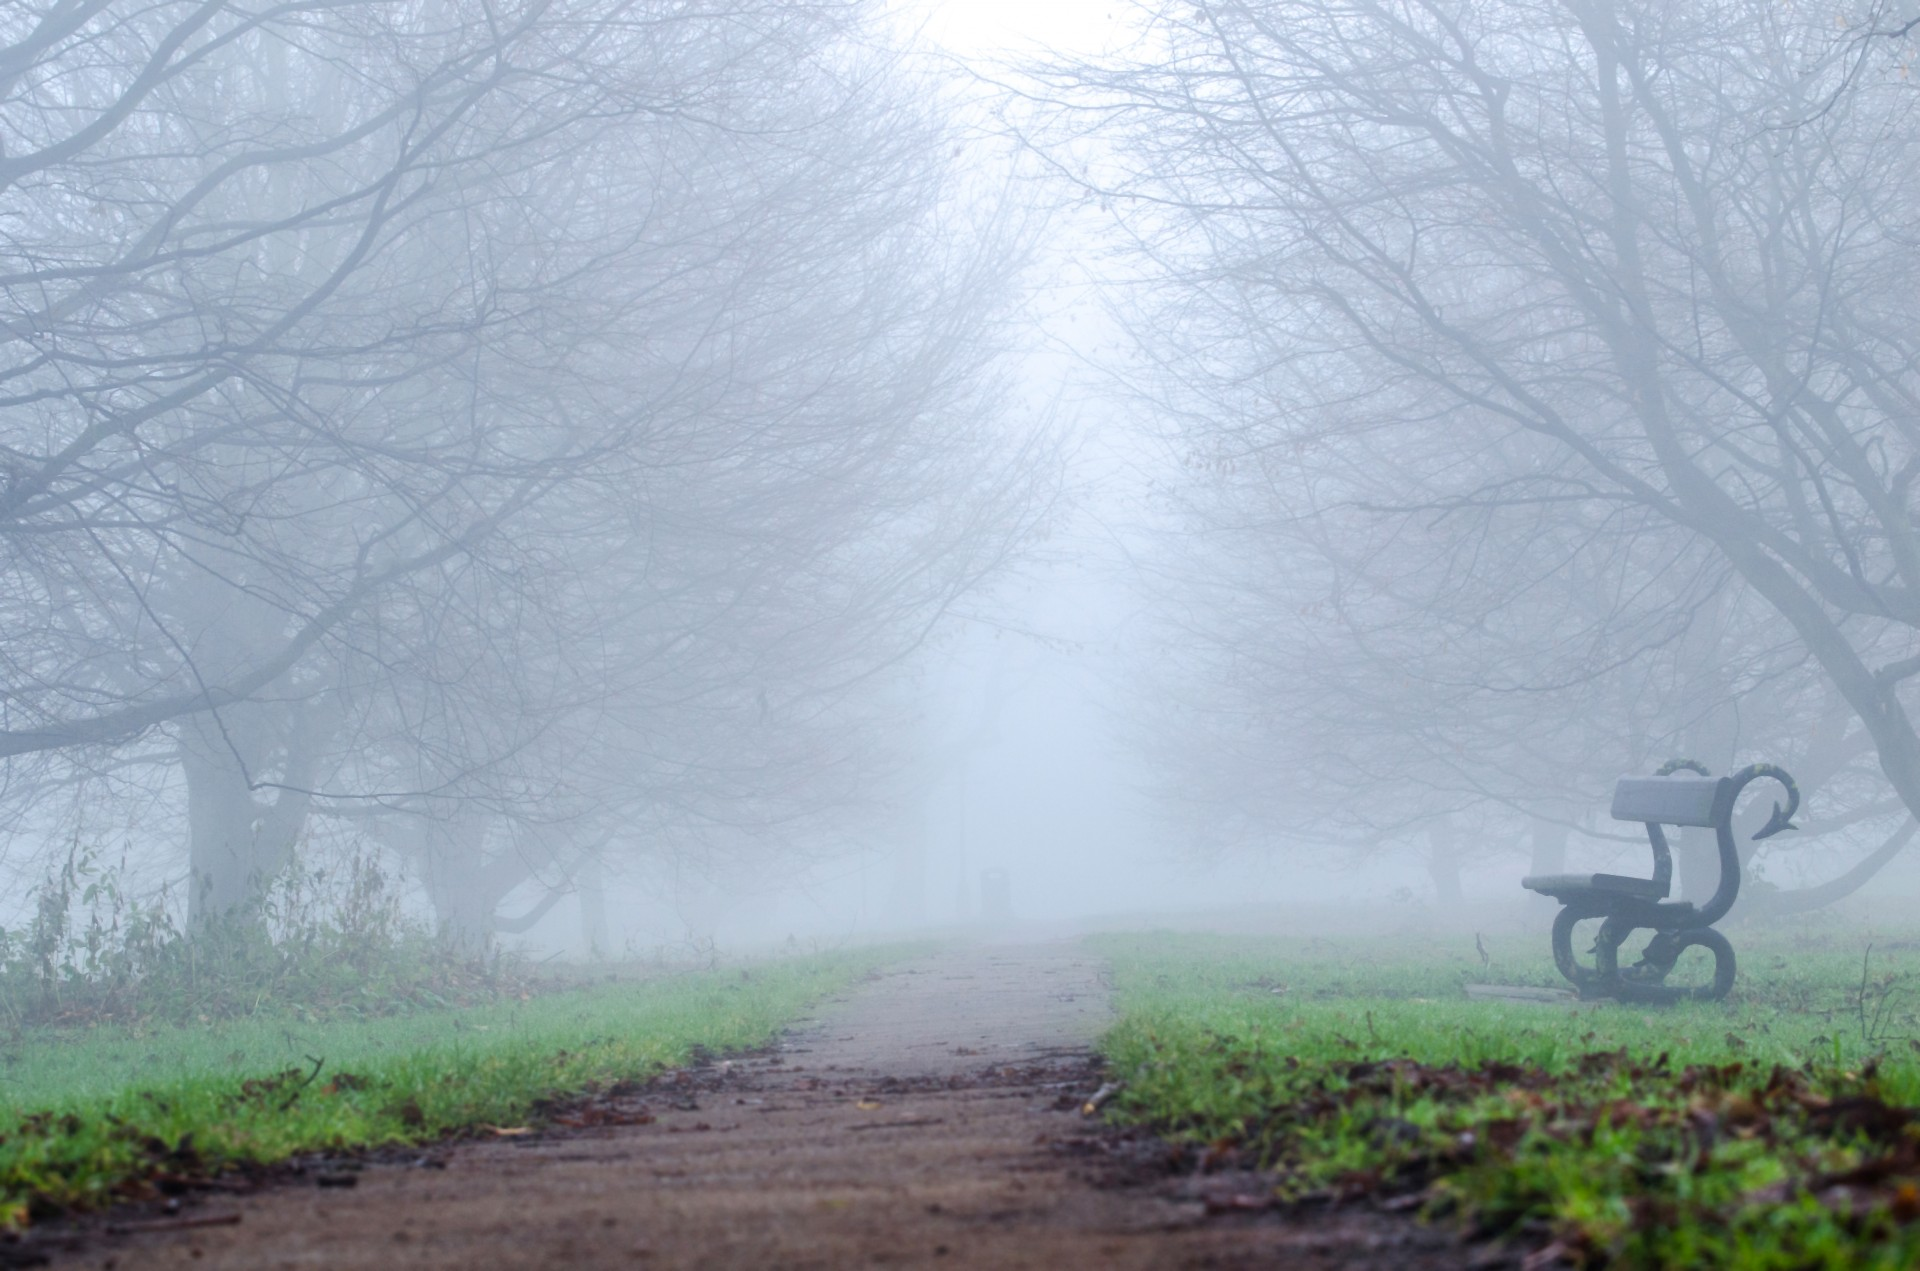 A park in the fall with leafless trees and shrouded in fog. There's a park bench barely visible through the fog